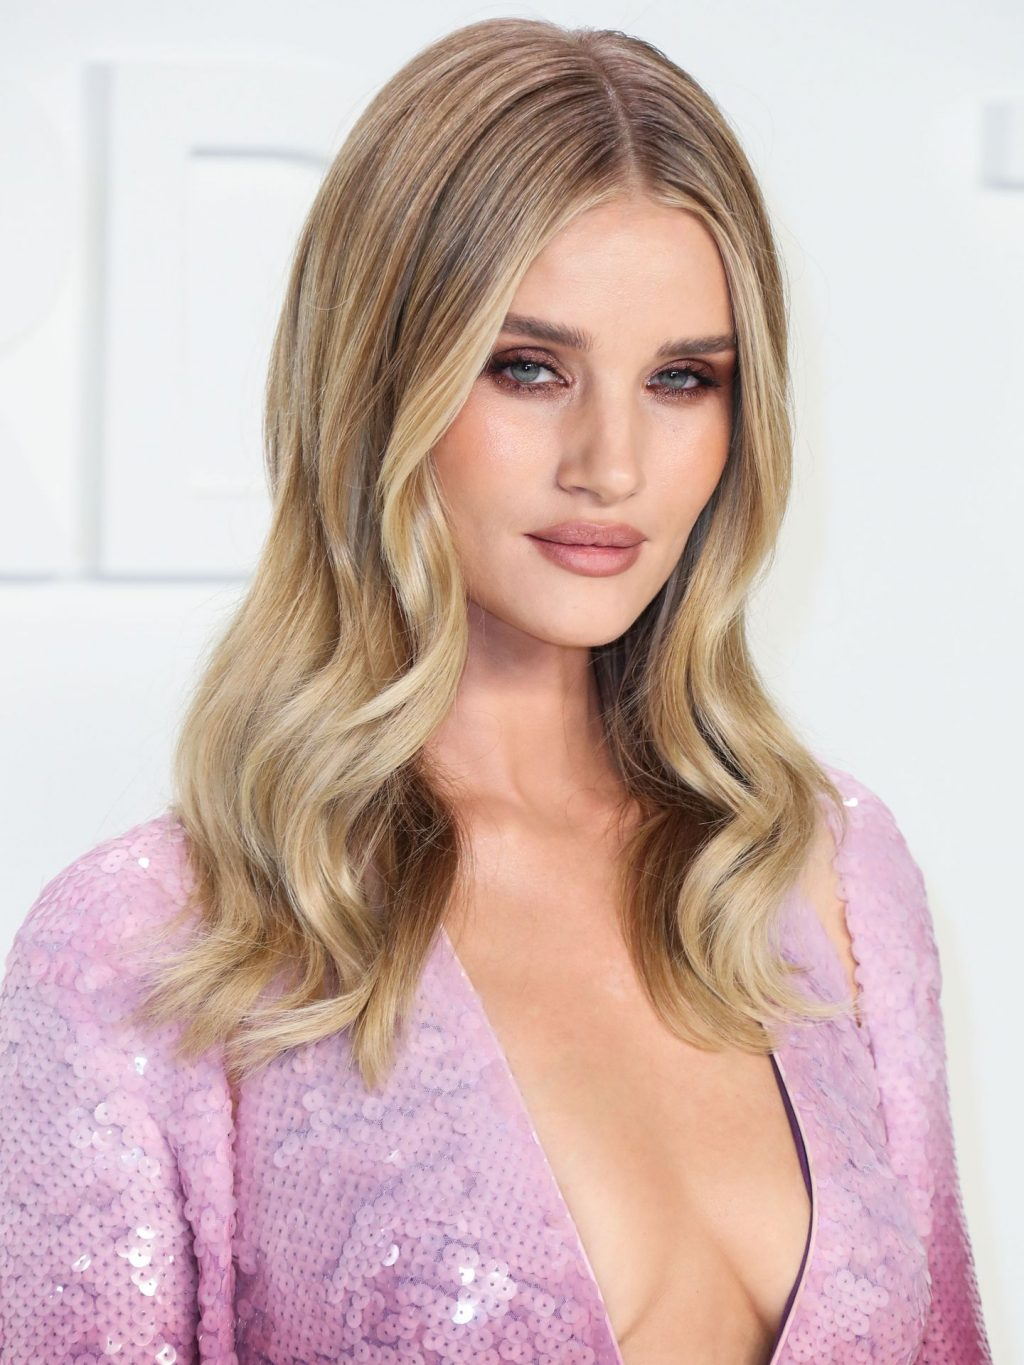 Rosie Huntington Whiteley Sexy The Fappening Blog 111 1024x1365 - Rosie Huntington-Whiteley Shows Her Cleavage at the Tom Ford Fashion Show (115 Photos)